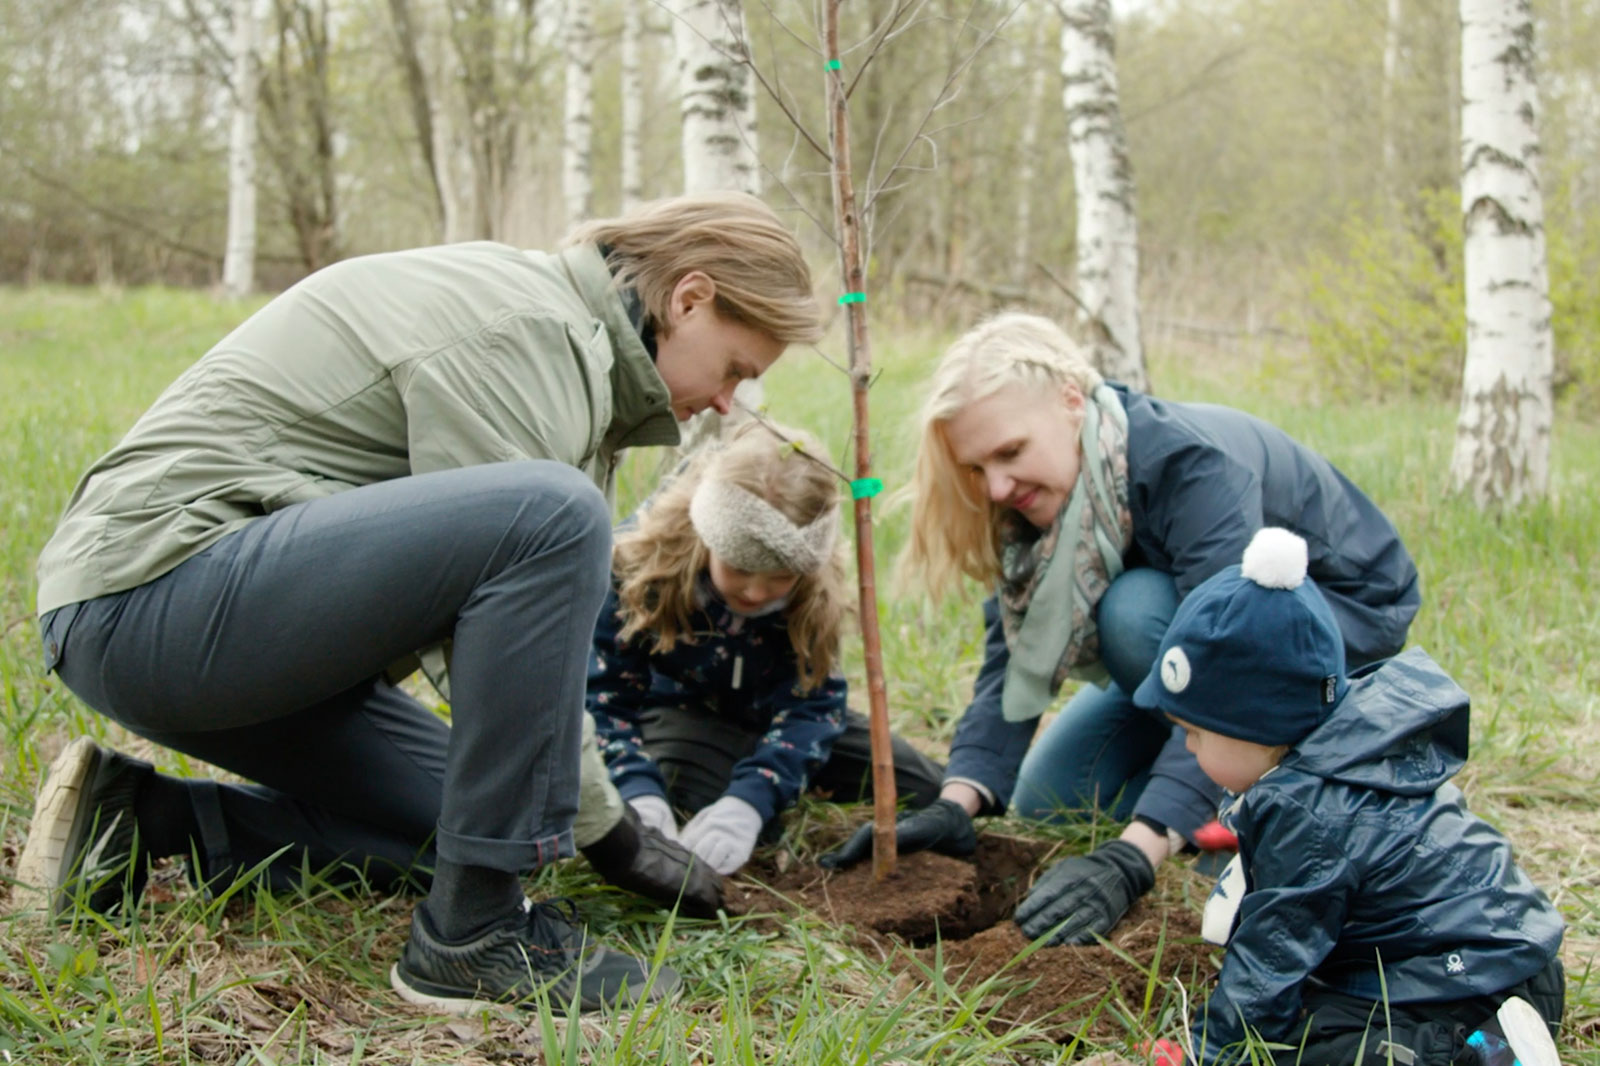 Family is planting a birch sapling.